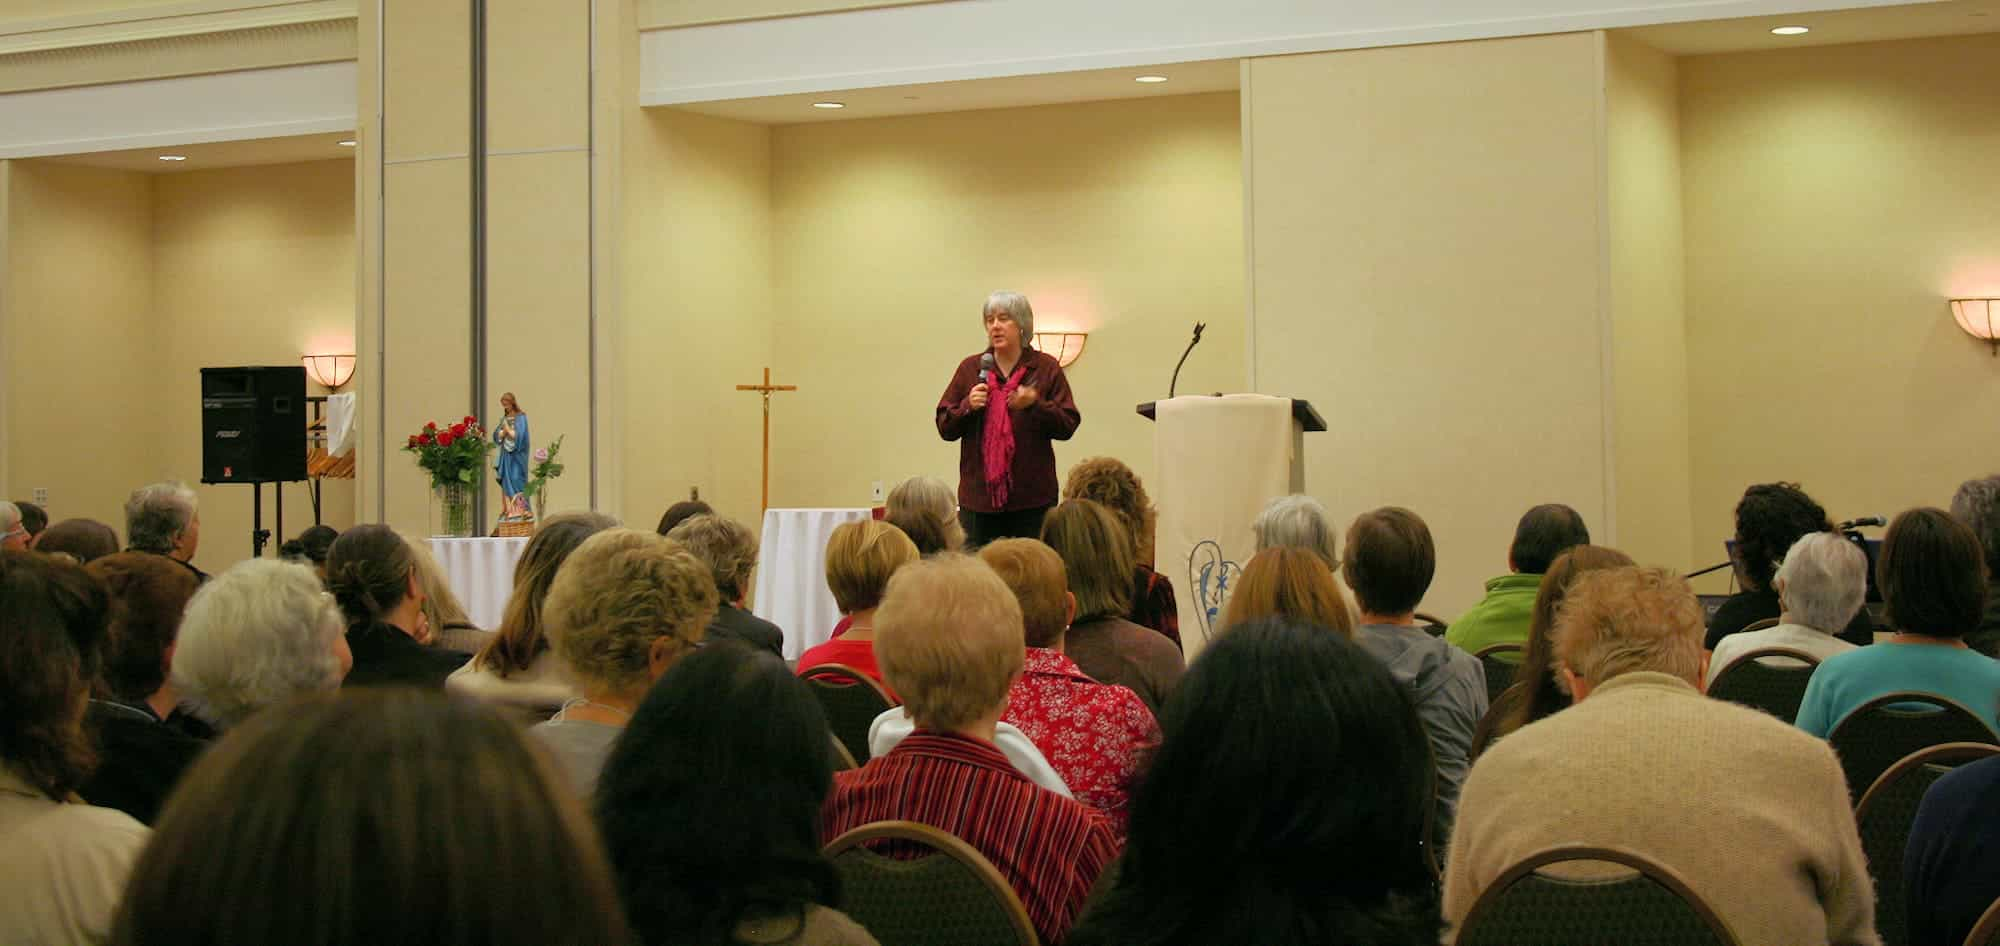 Terry Modica gives women's retreats